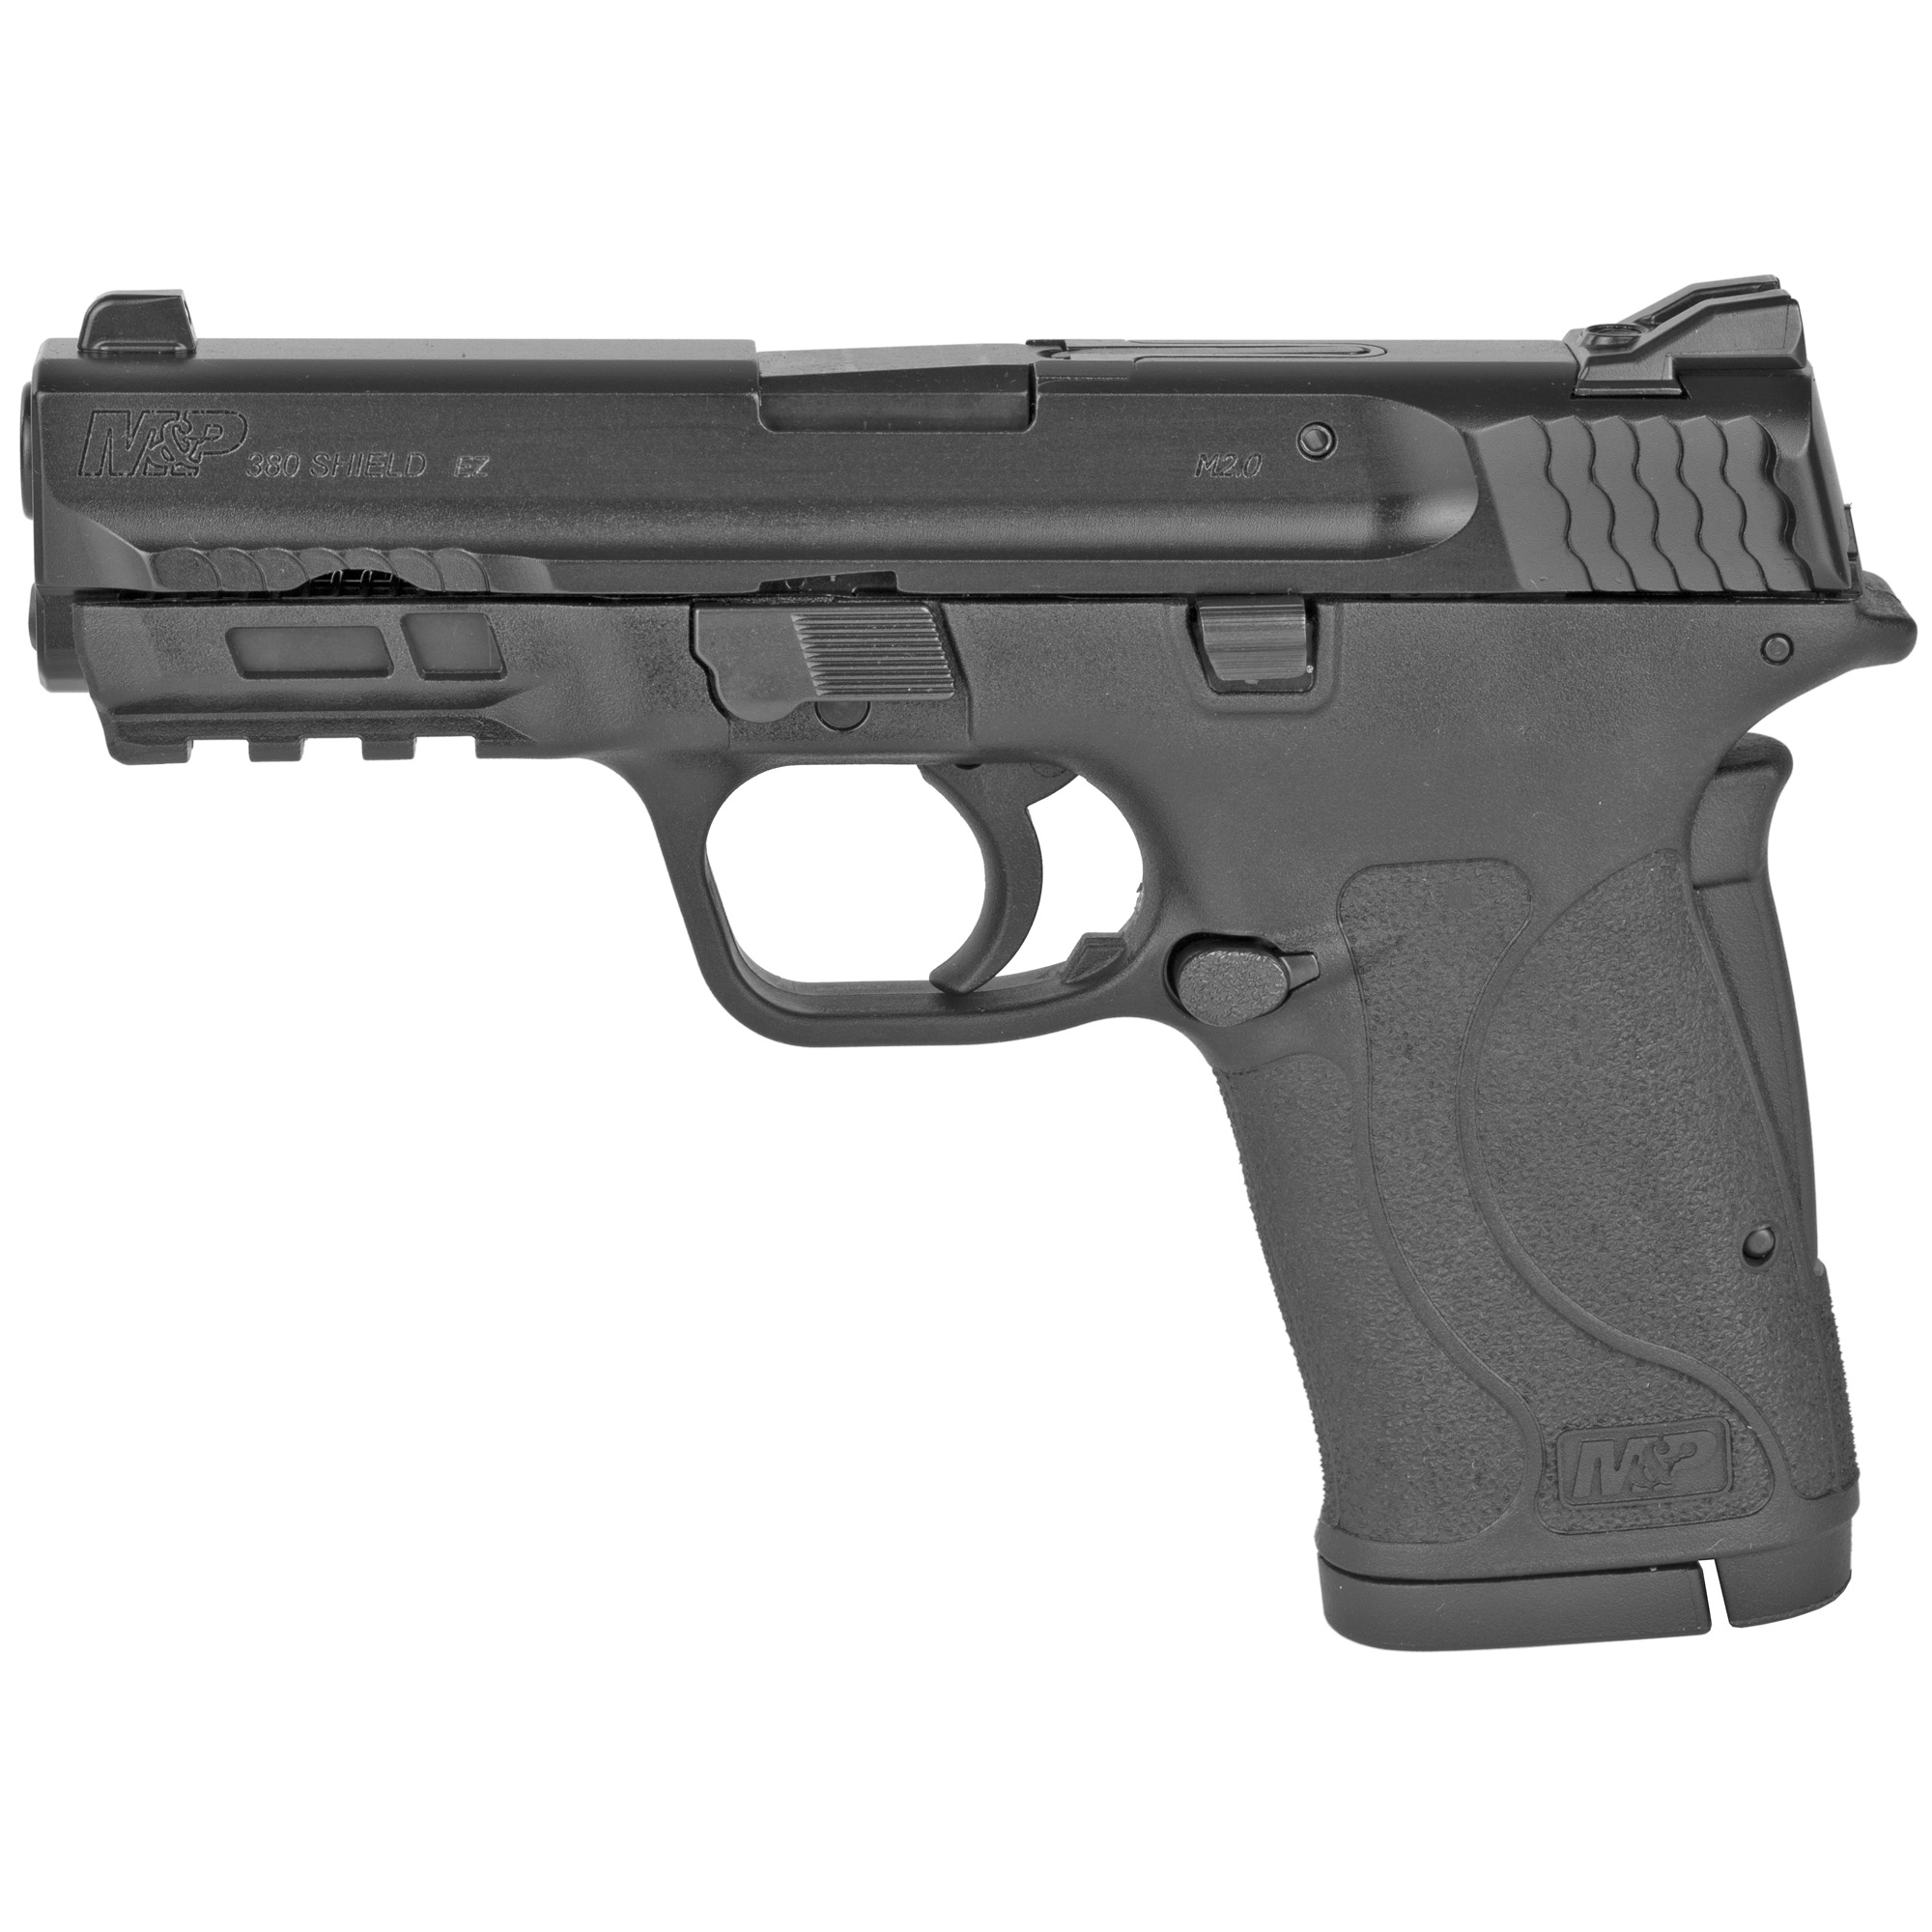 "Built for personal protection and every-day carry"" the M&P380 Shield EZ is chambered in 380 Auto and is designed to be easy to use"" featuring an easy-to-rack slide "" easy-to-load magazine"" and easy-to-clean design. Built for personal and home protection"" the innovative M&P380 Shield EZ pistol is the latest addition to the M&P M2.0 family and provides an easy-to-use protection option for both first-time shooters and experienced hand gunners alike. Includes two 8-round magazines."